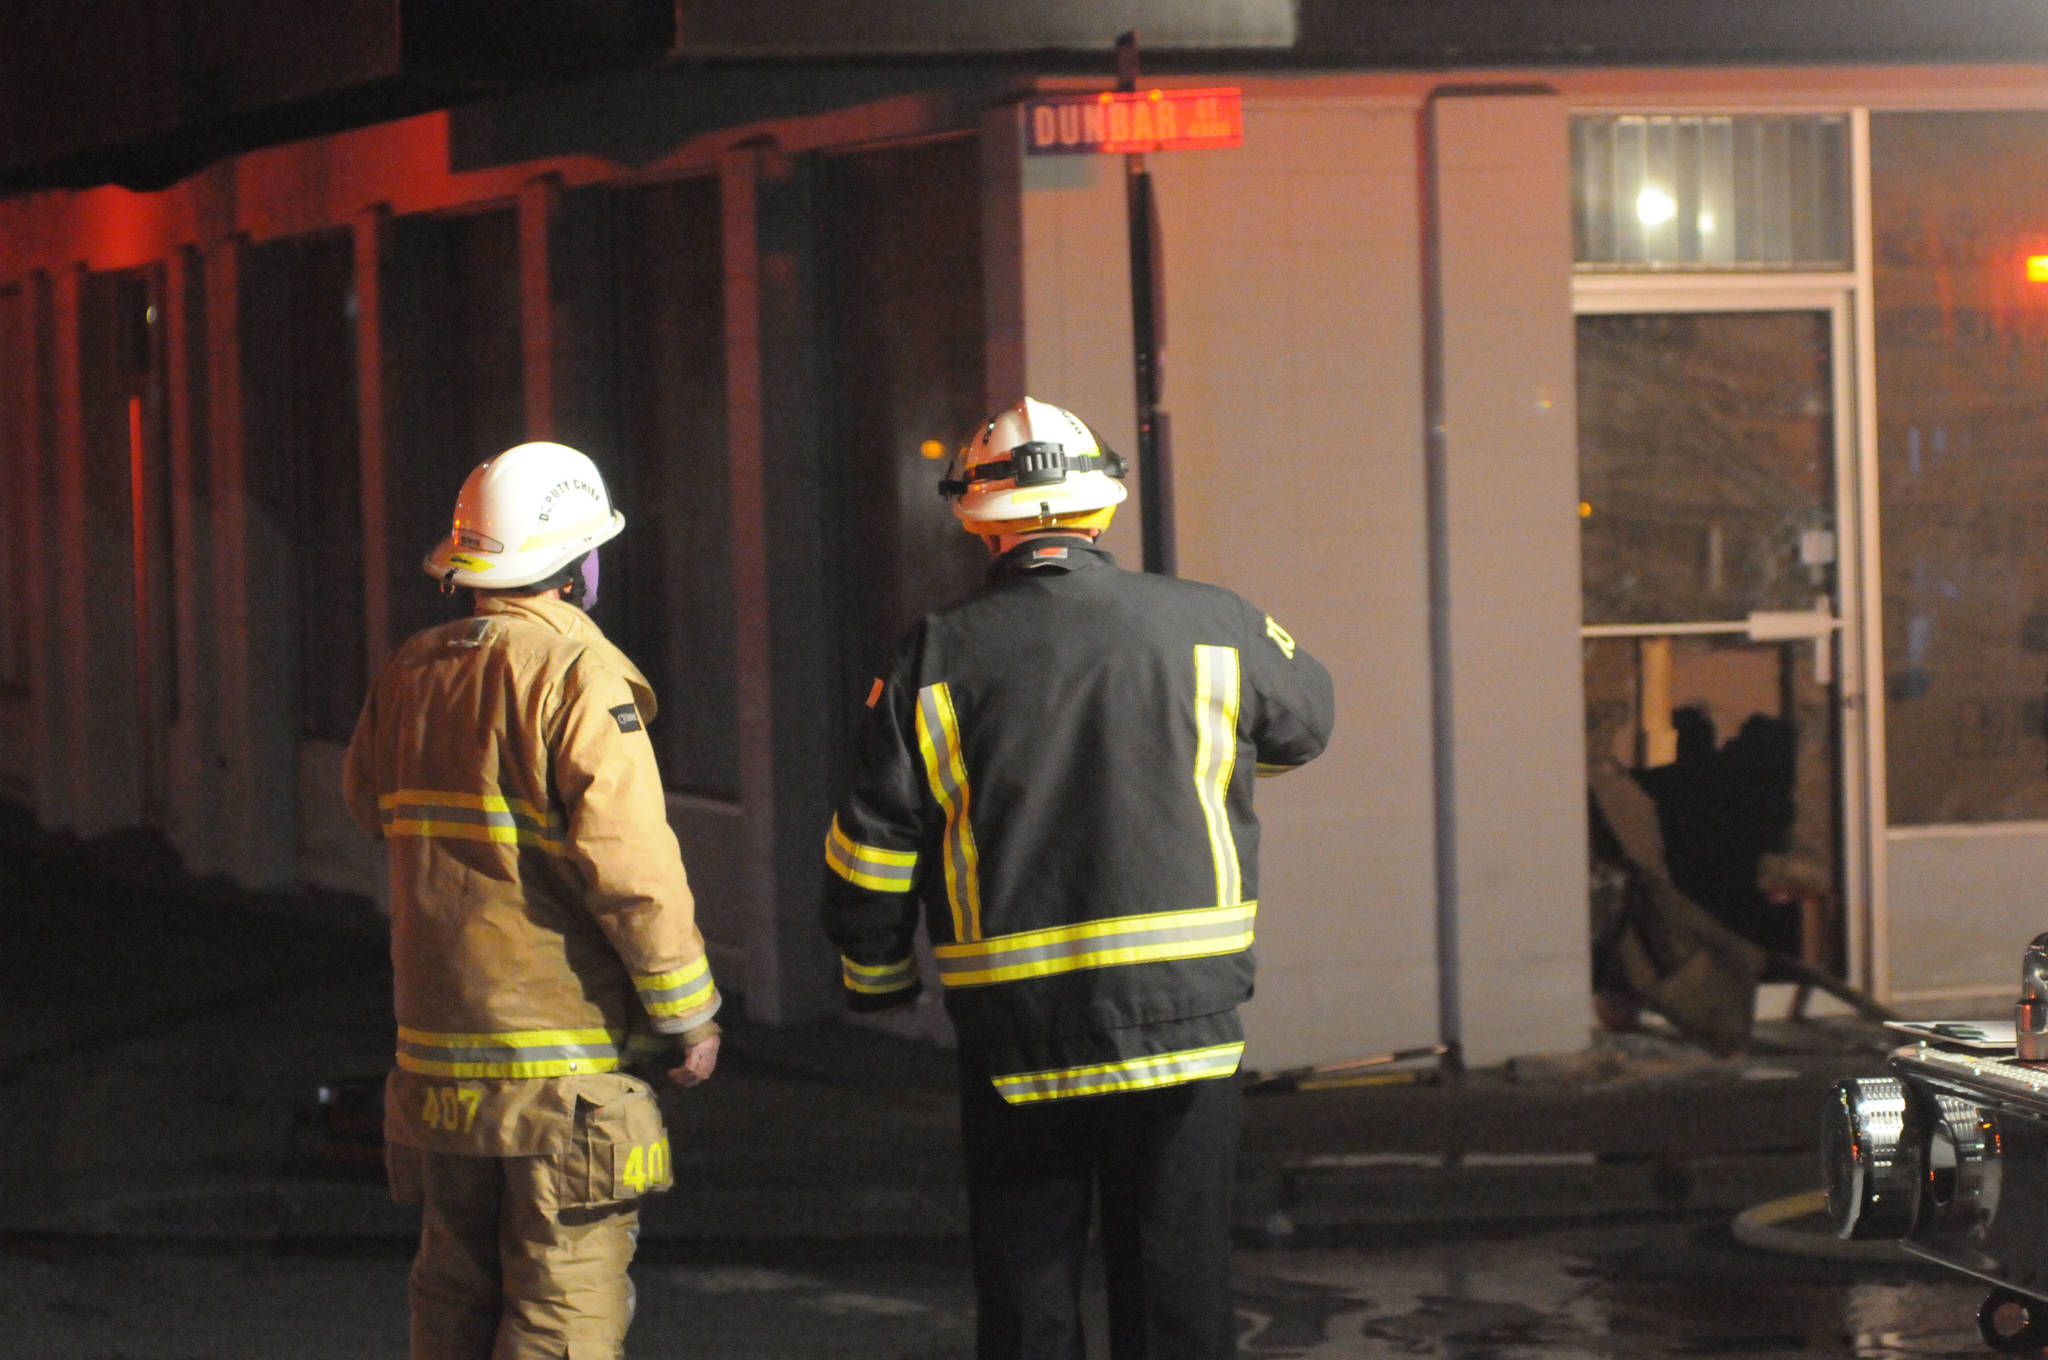 Port Alberni Fire Department deputy Chief Wes Patterson, right, and another unidentified firefighter discuss the situation at the former Acklands-Grainger building at Third Avenue and Dunbar Street, Thursday, Jan. 21, 2021. No fire was detected in the building. (SUSAN QUINN/ Alberni Valley News)